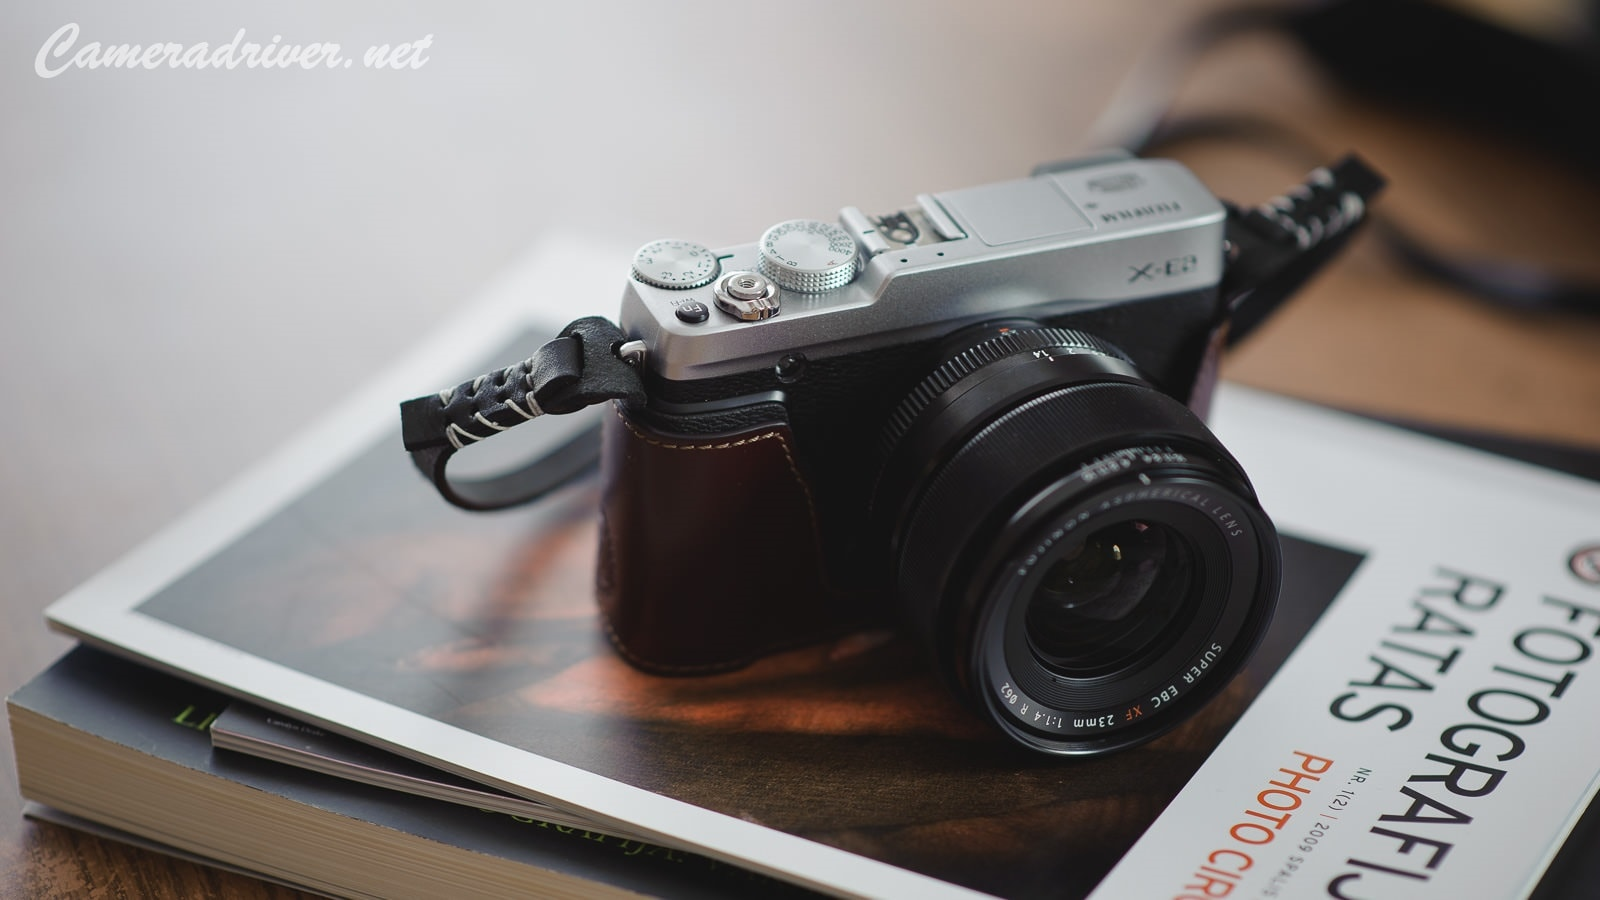 Fujifilm X-E2 Camera Software and Firmware Update Version 4.10